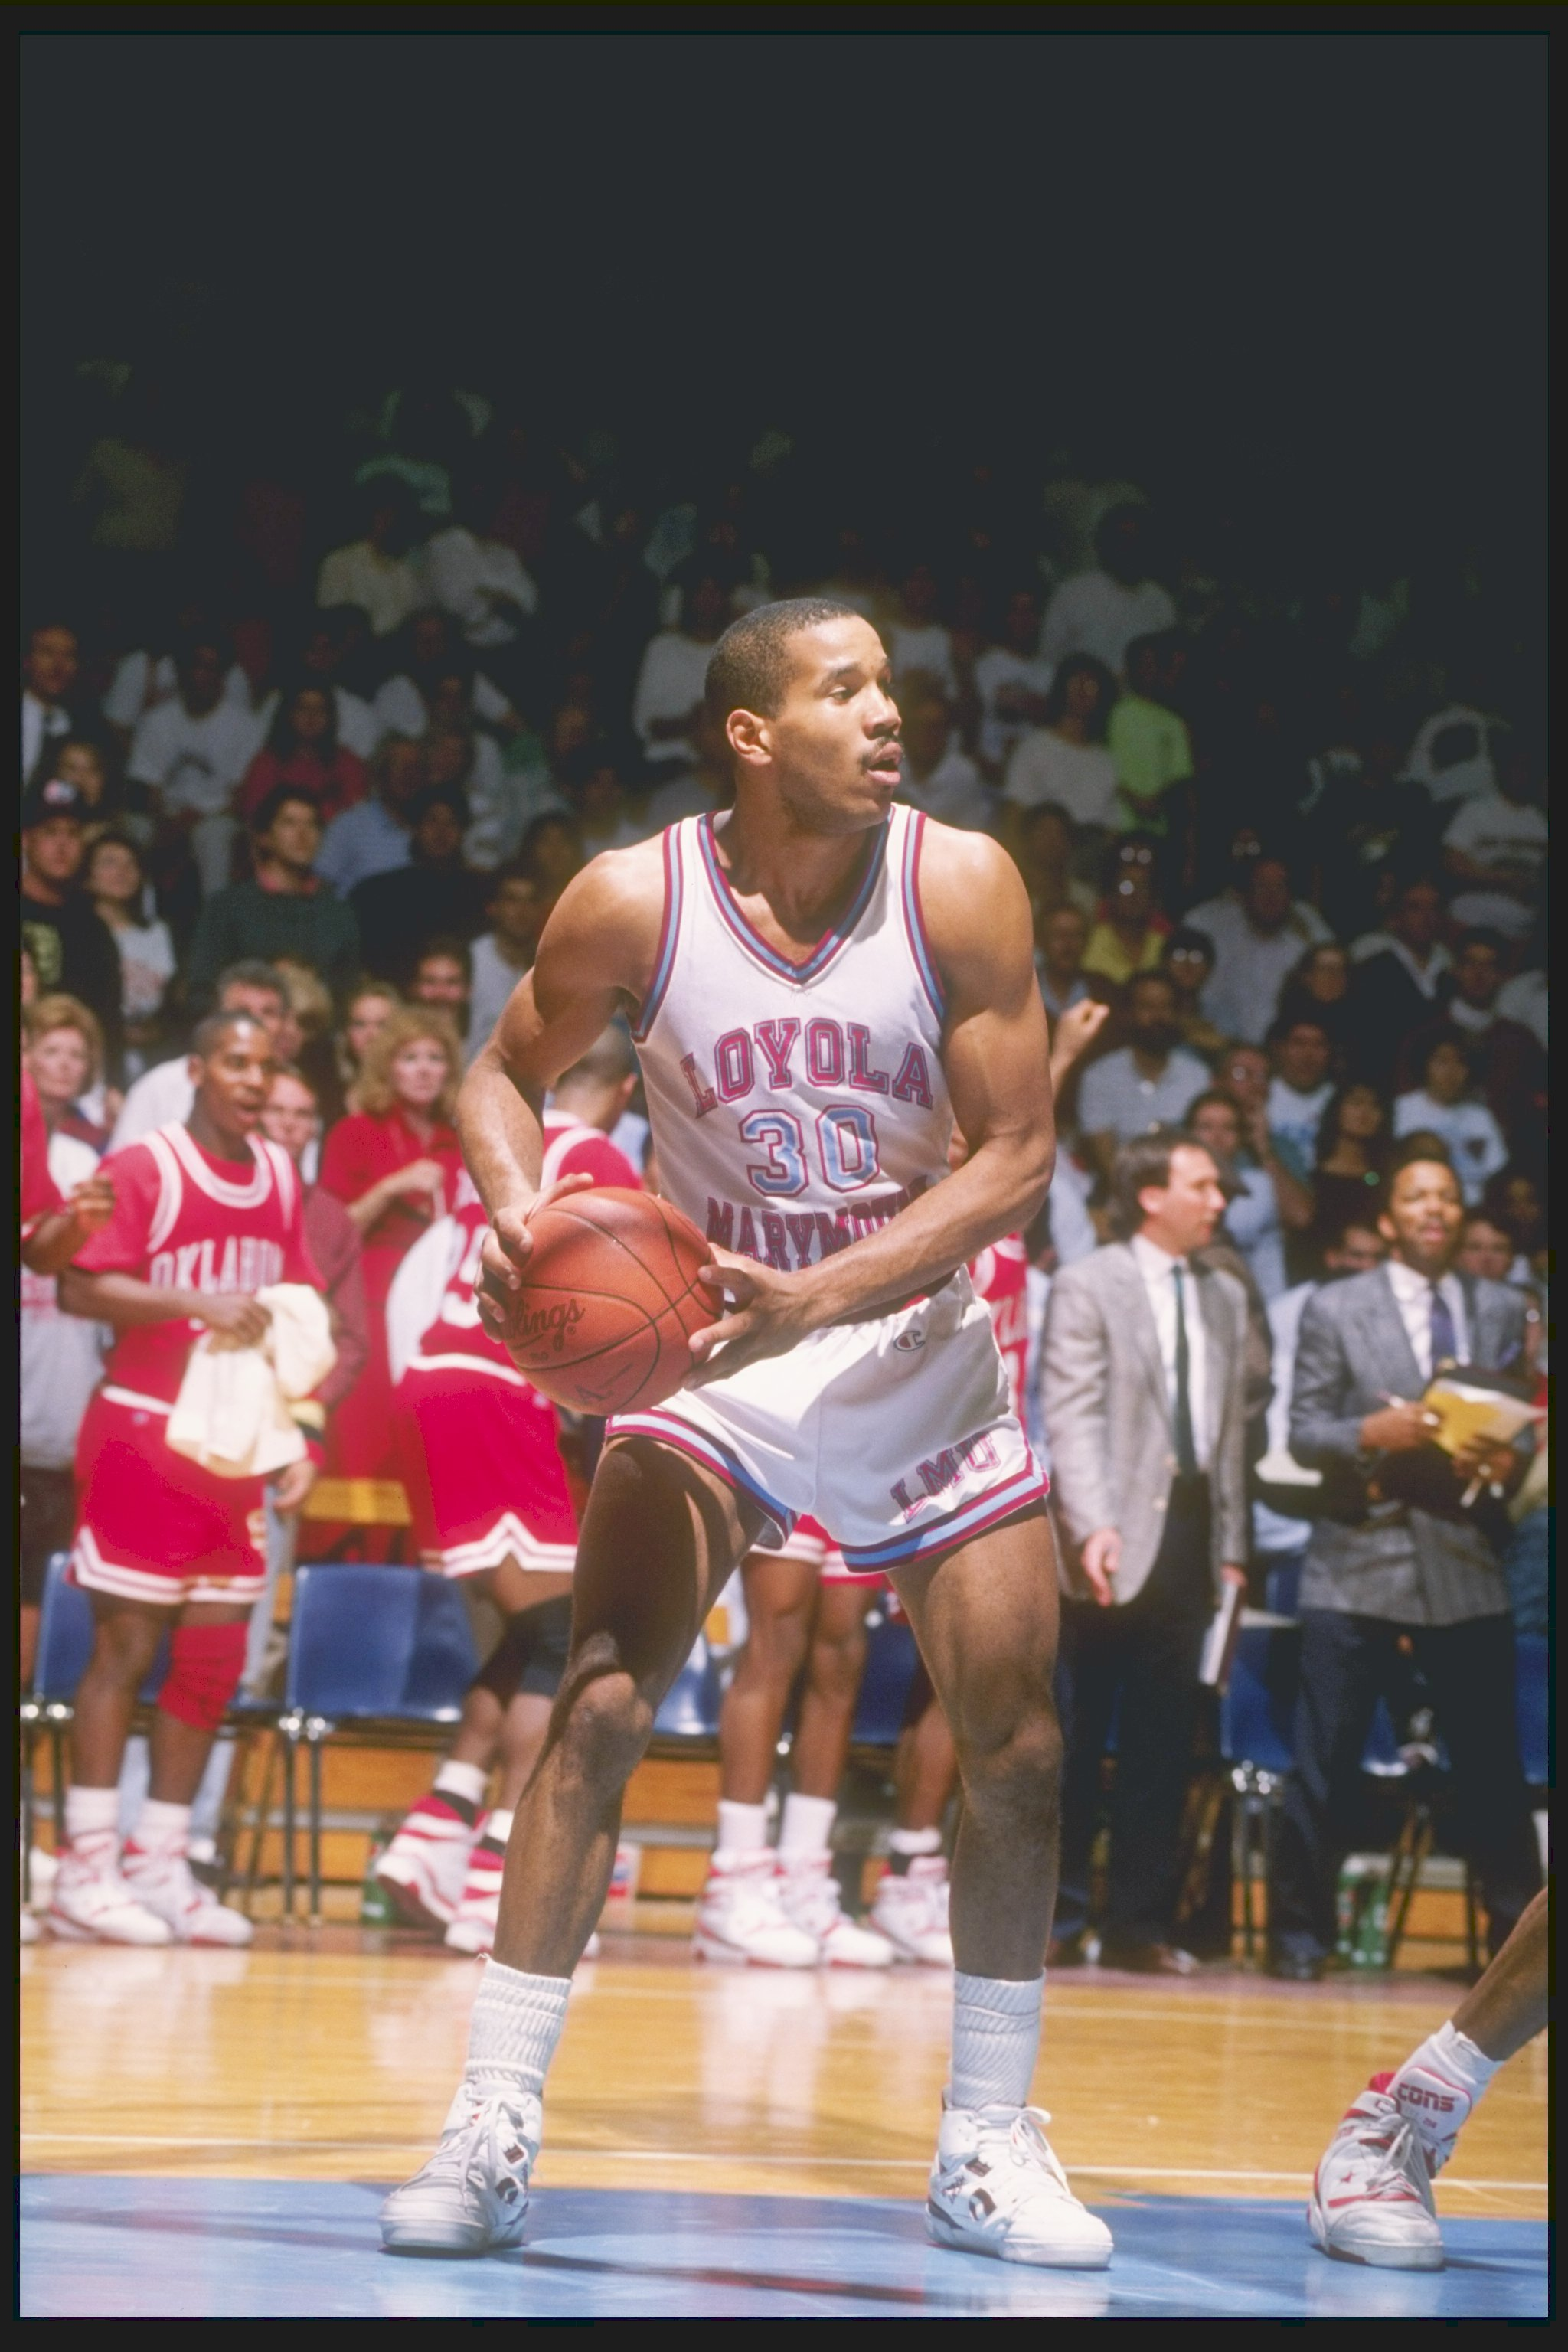 1990:  Guard Bo Kimble of the Loyola-Marymount Lions holds the ball during a game. Mandatory Credit: Mike Powell  /Allsport